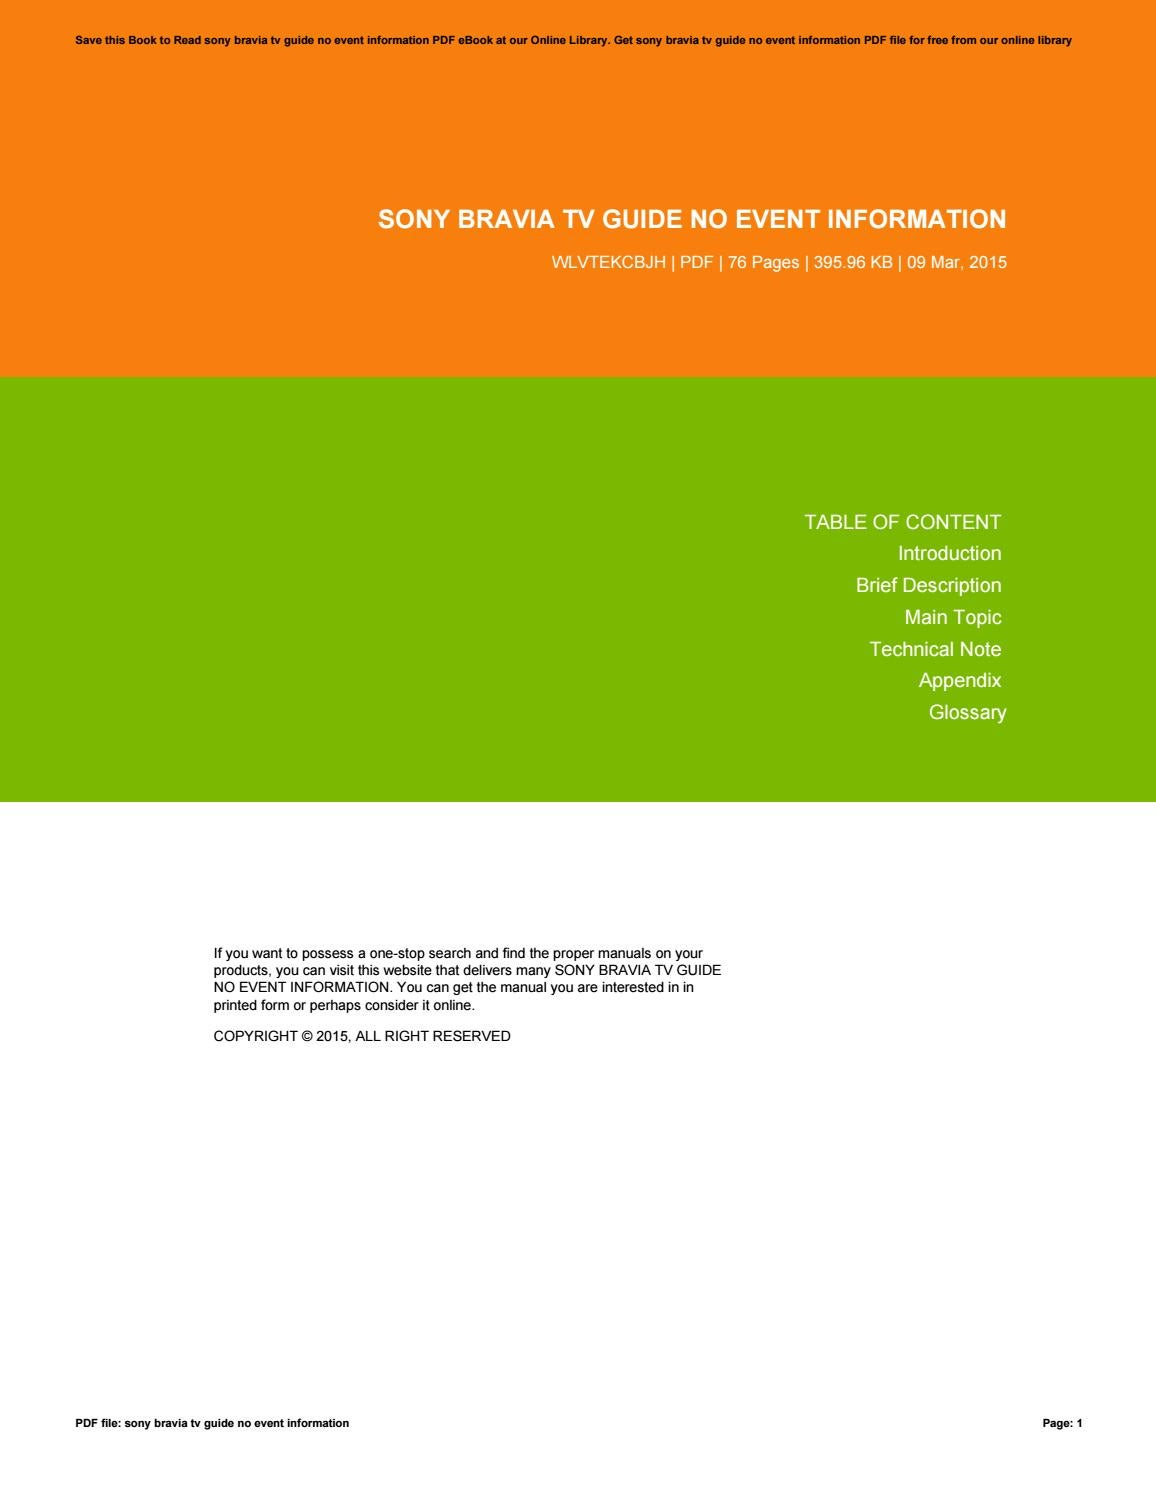 Sony bravia tv guide no event information by JohnBarnett3278